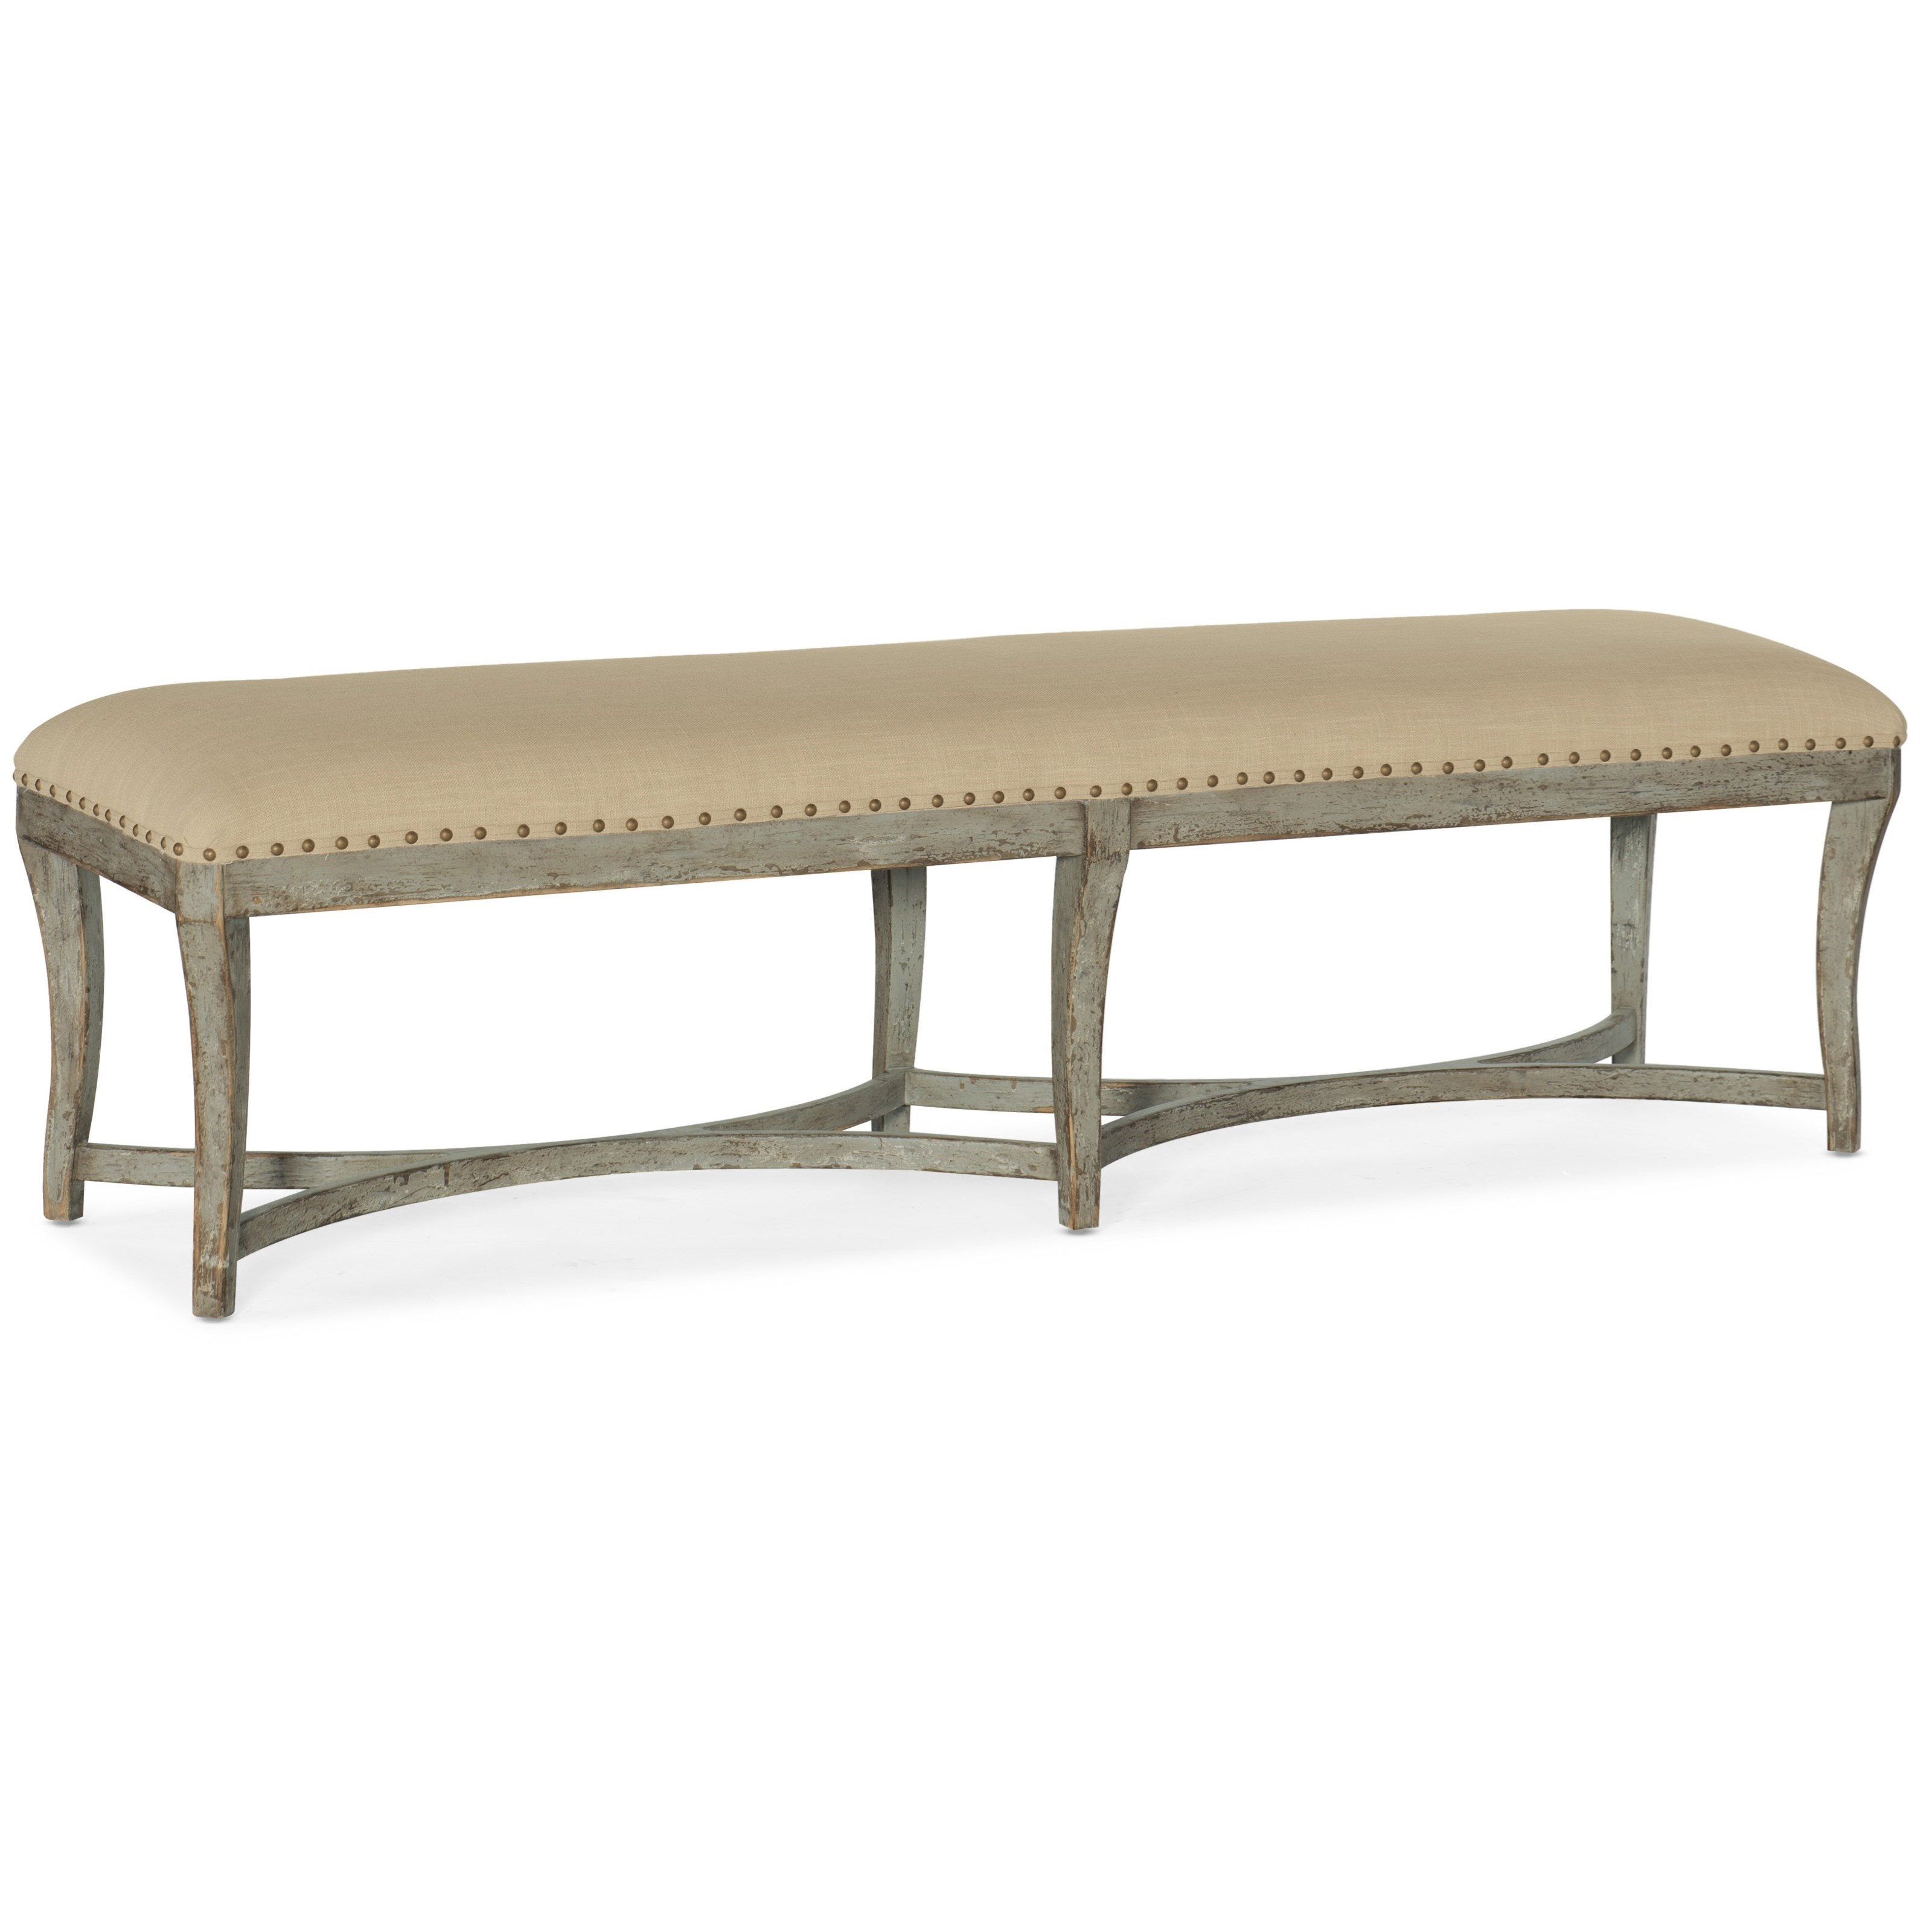 Alfresco Panchina Bed Bench by Hooker Furniture at Alison Craig Home Furnishings